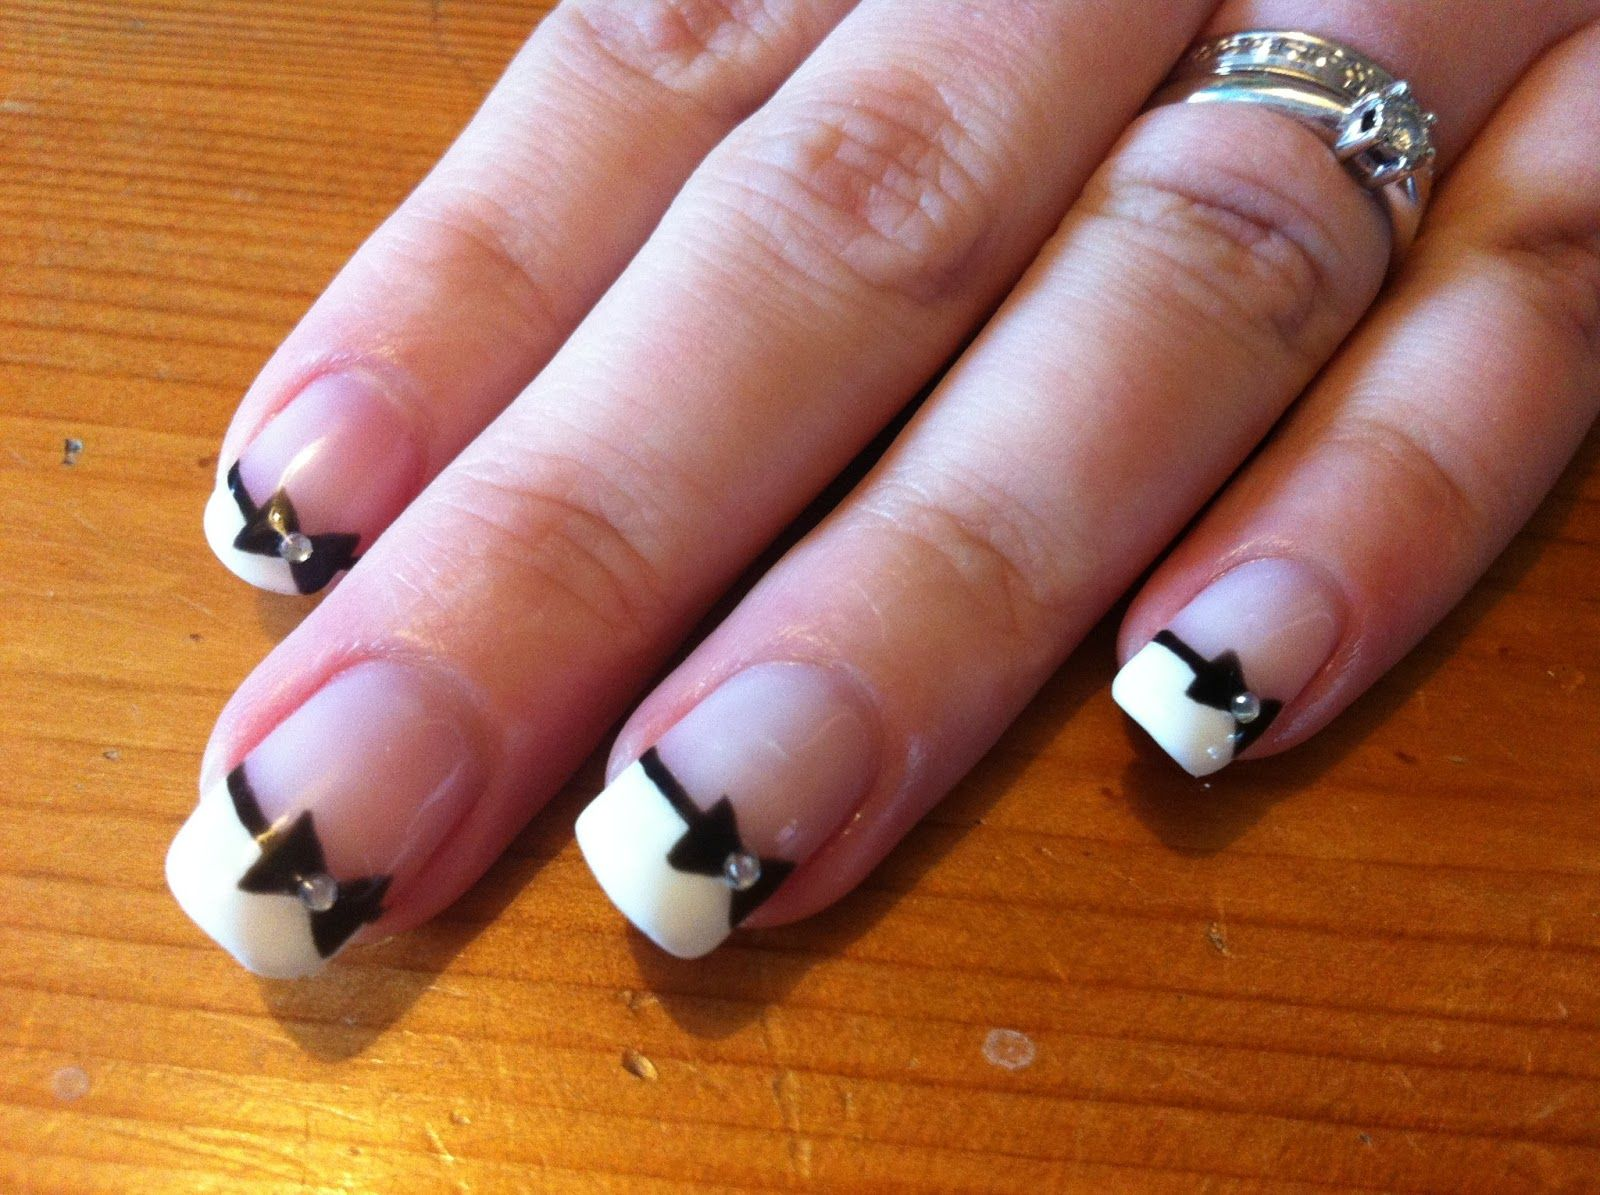 Cnd shellac nail art french manicure with black bows nails cnd shellac nail art french manicure with black bows prinsesfo Choice Image